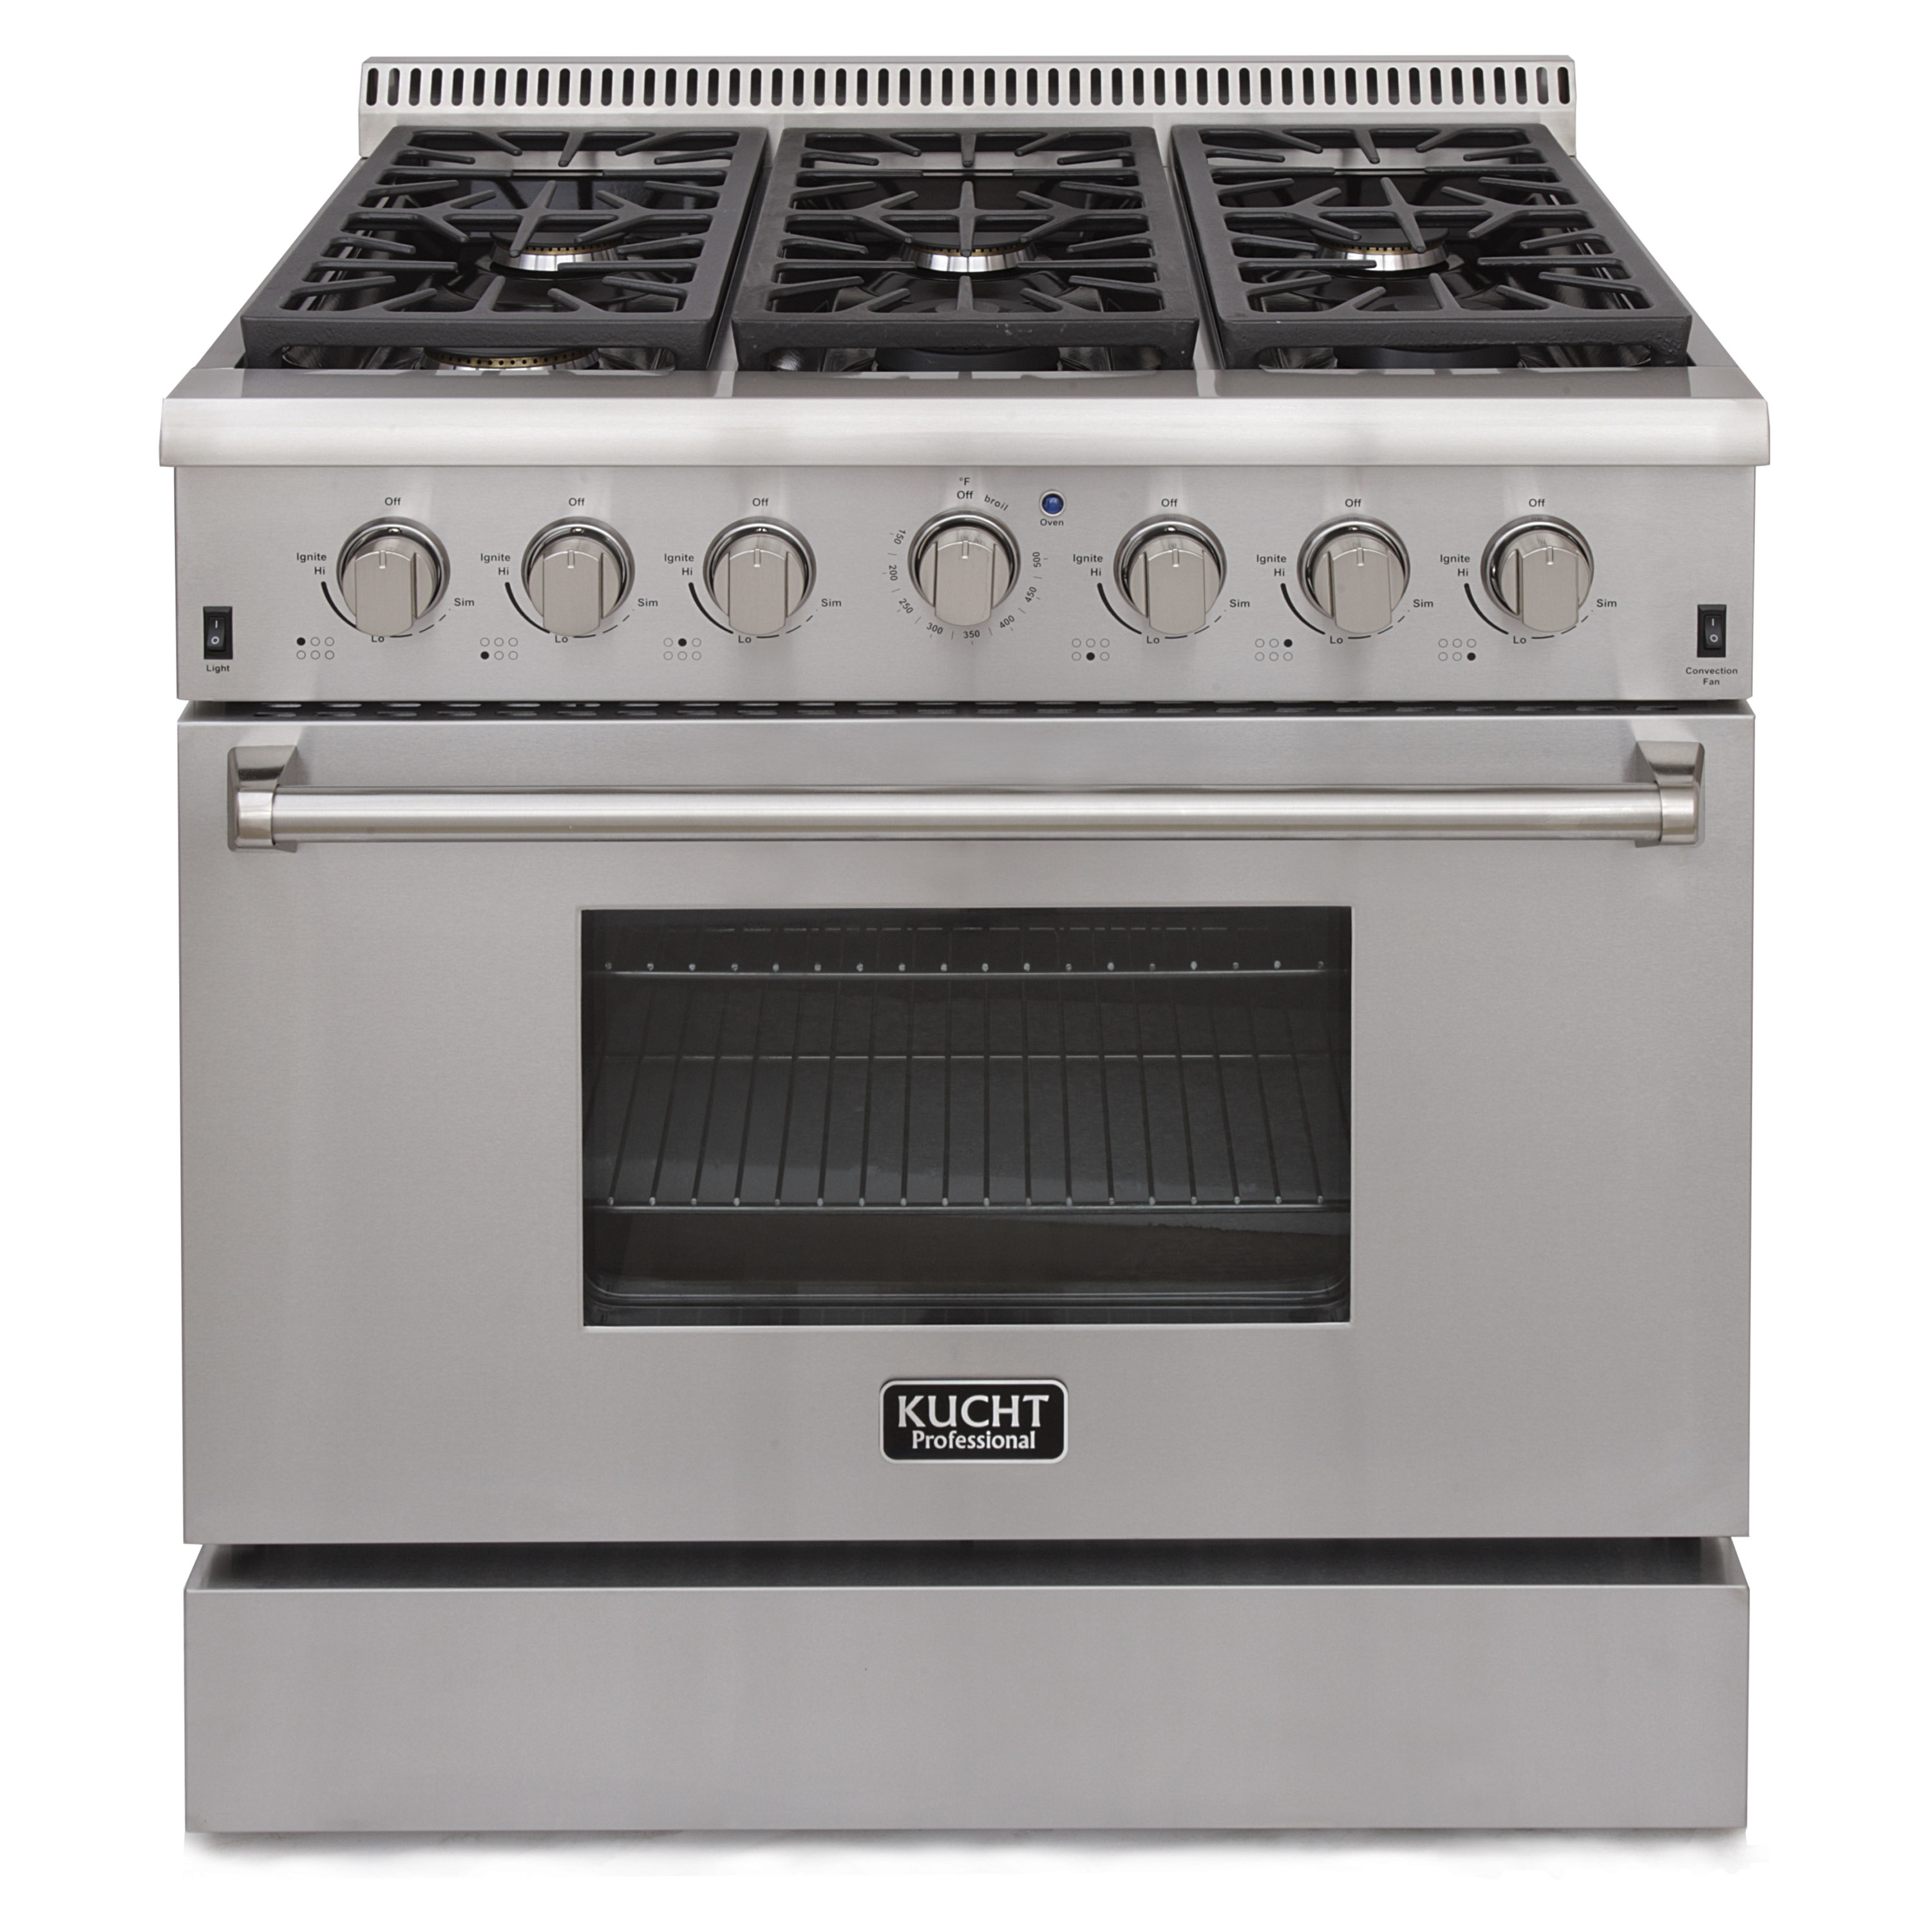 KUCHT Professional 36 in. 5.2 cu. ft. Natural Gas Range with Sealed Burners and